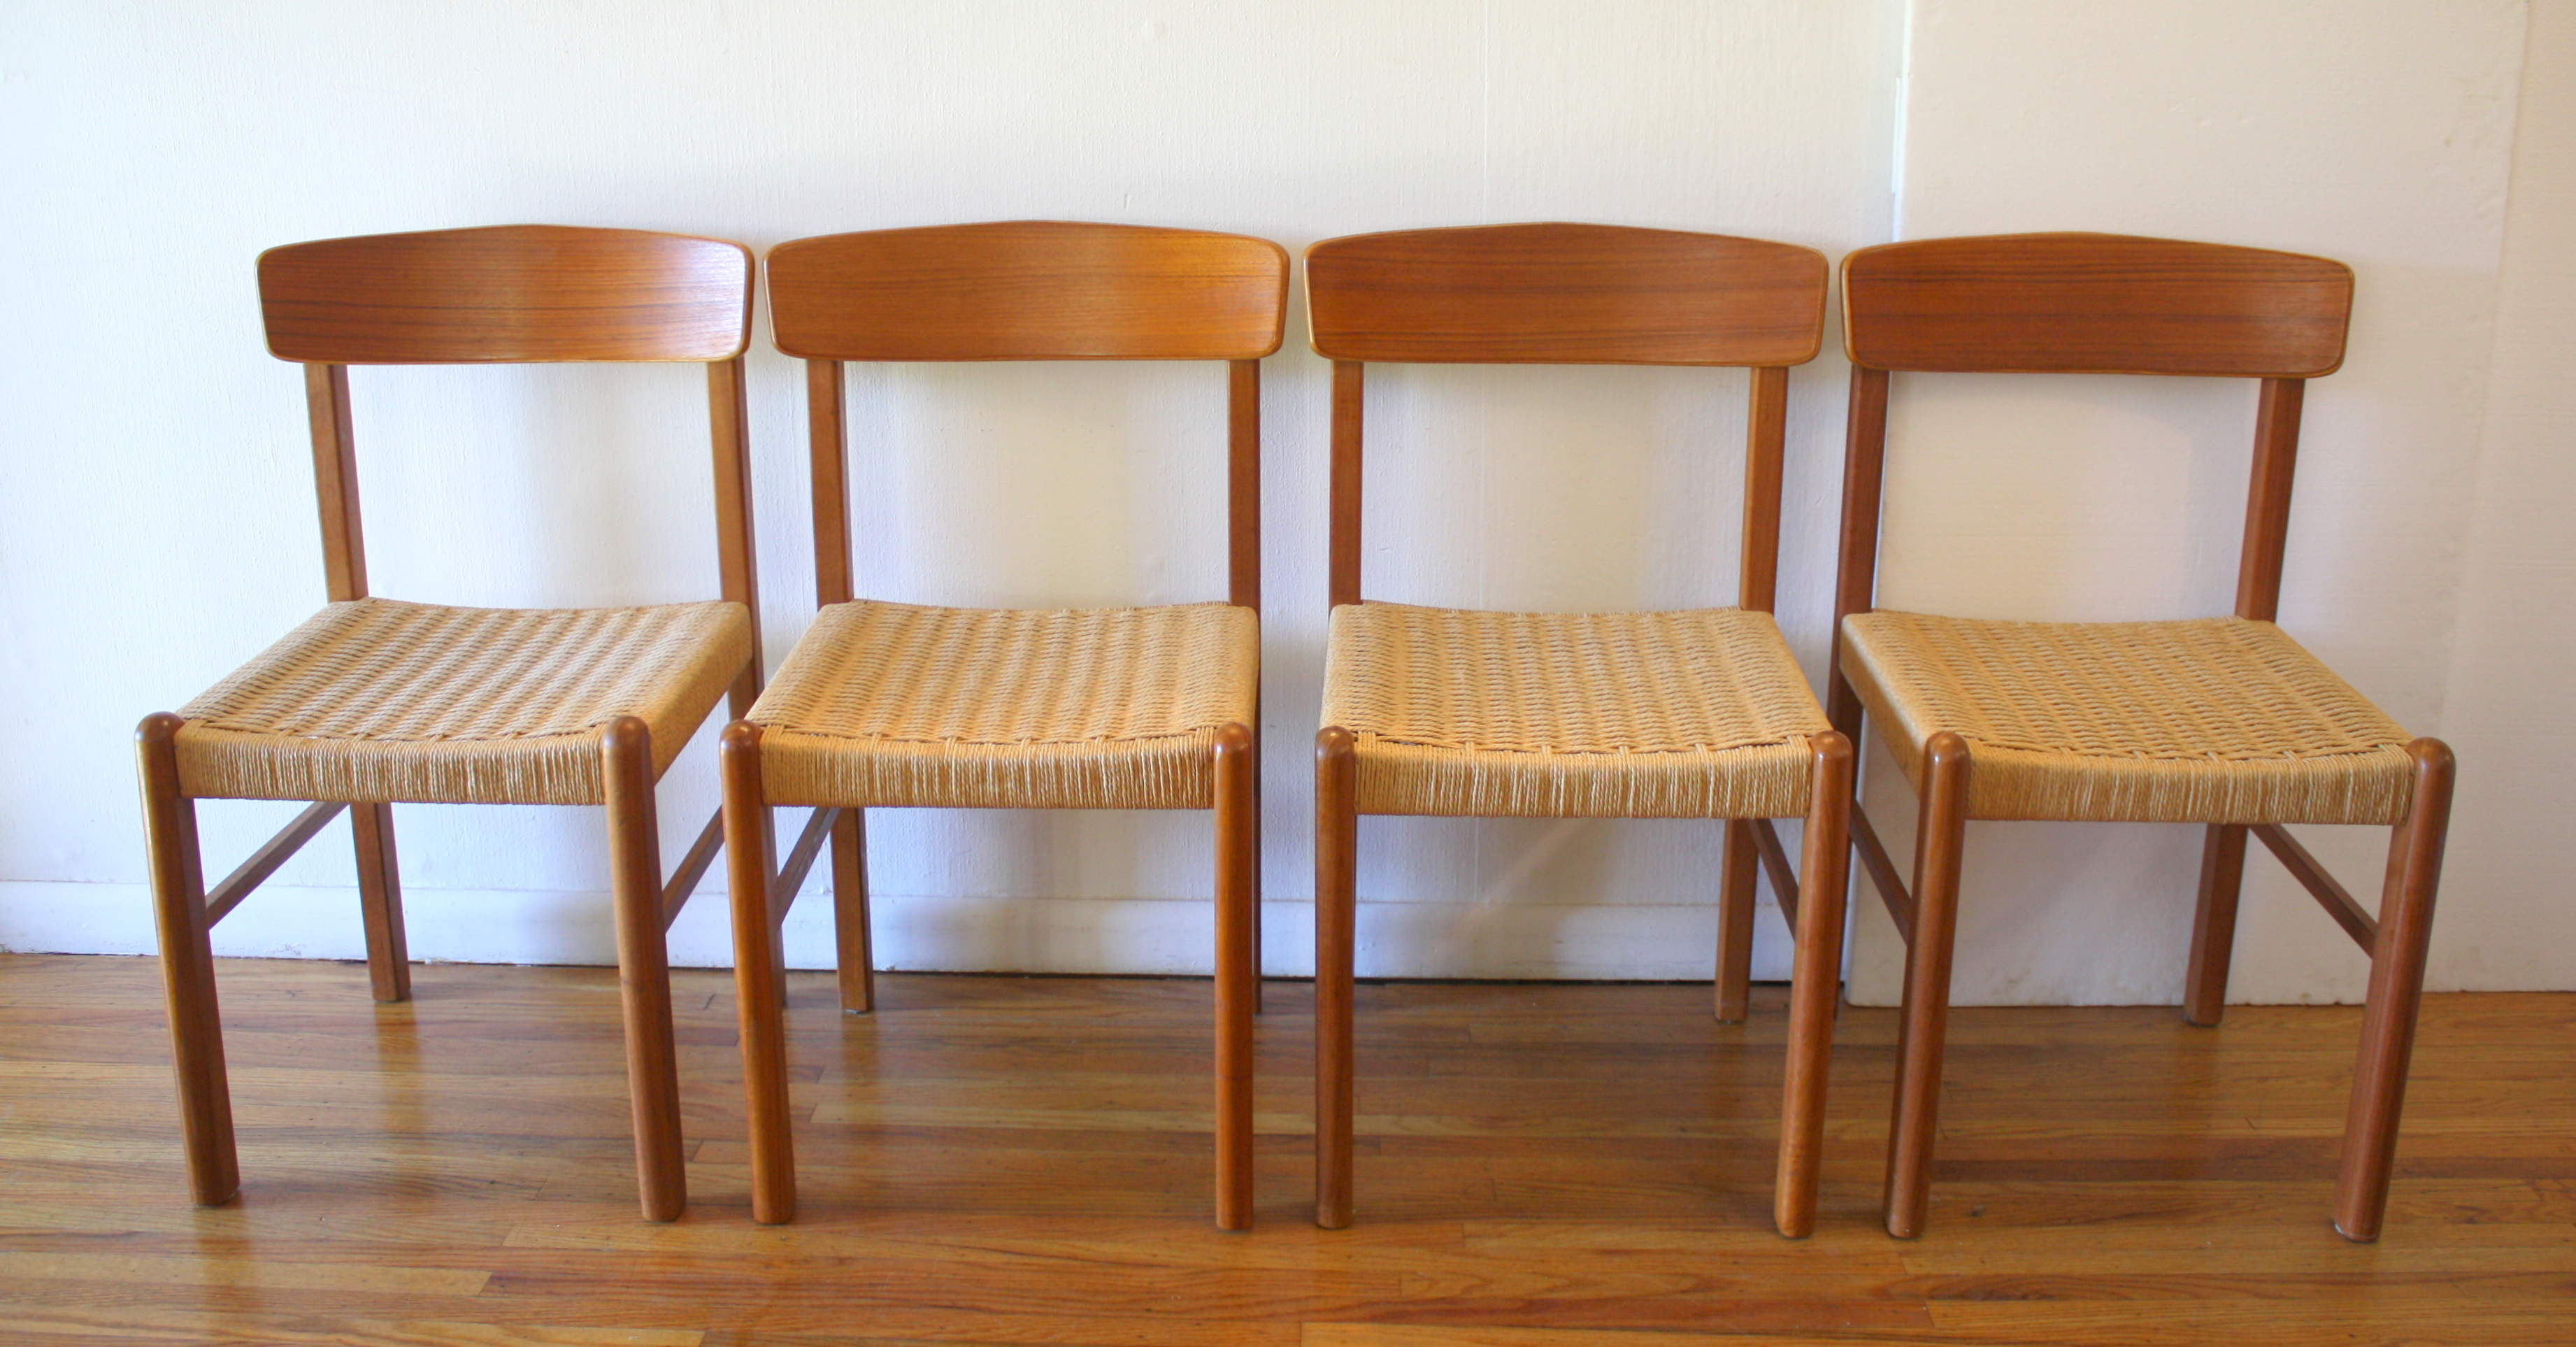 Superbe Mid Century Modern Danish Teak Refractory Dining Table By Mobler And Rush Seat  Chairs | Picked Vintage